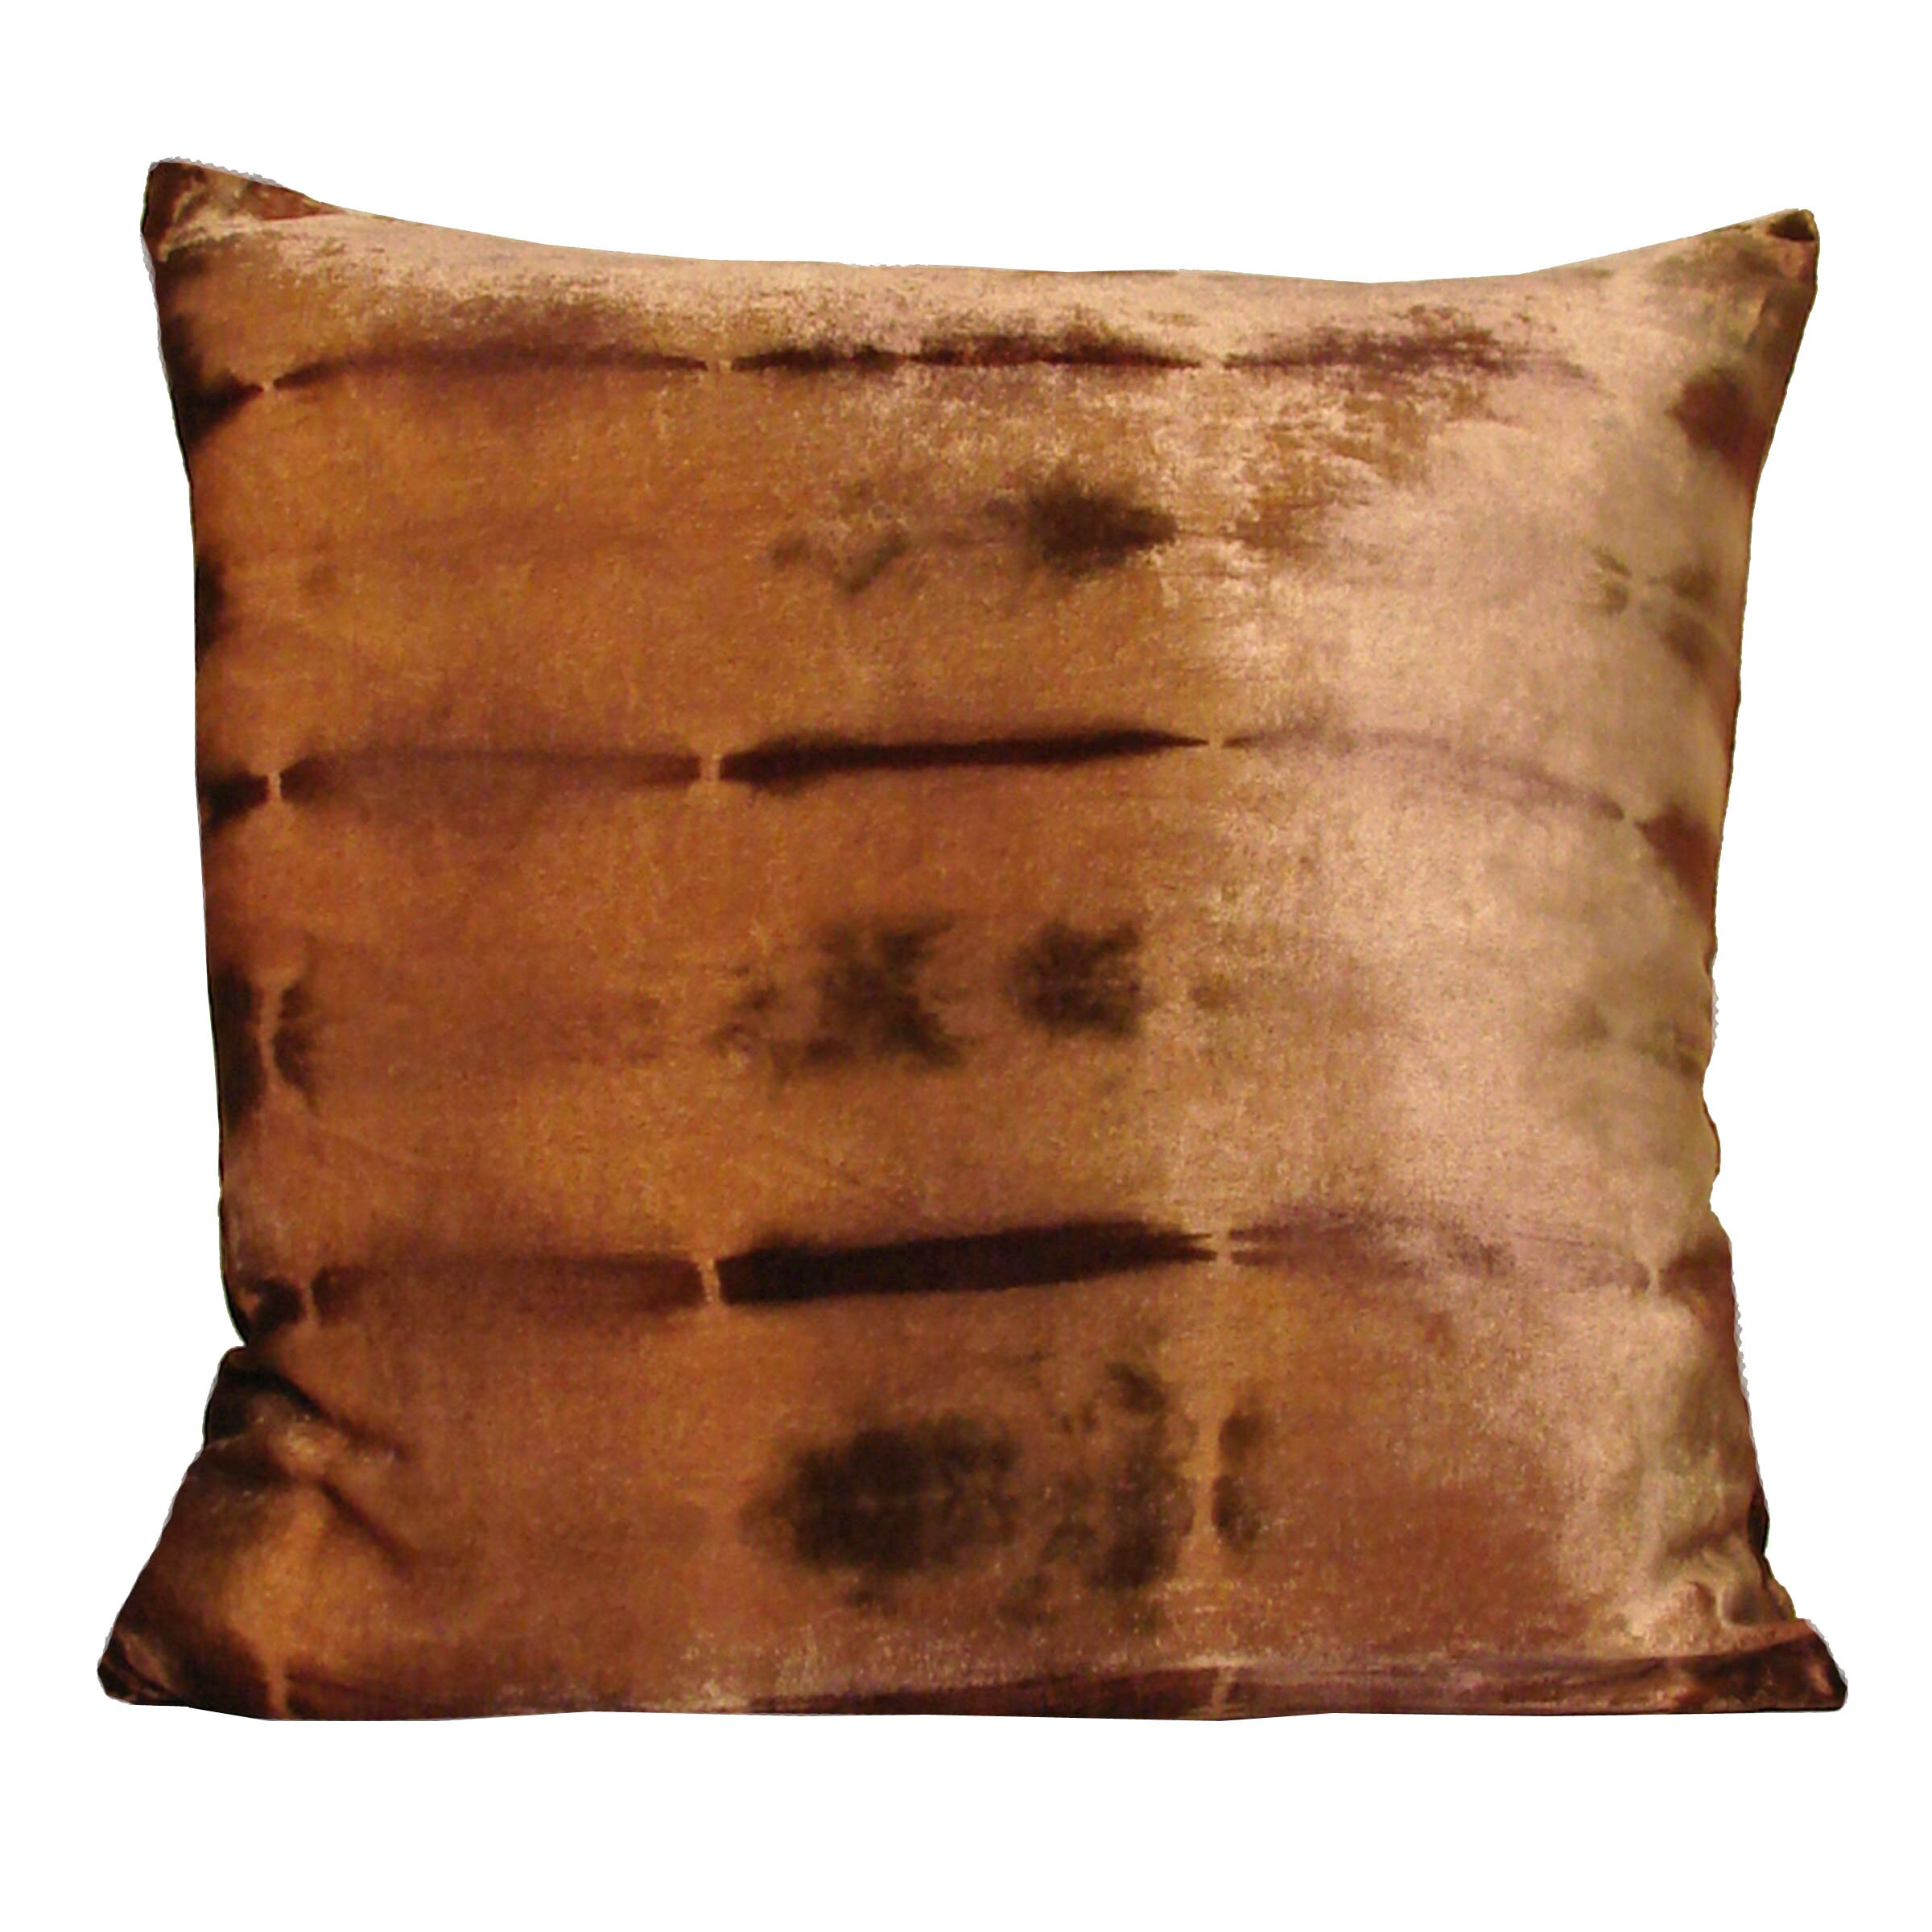 Decorative Pillow Wayfair : Kevin O Brien Studio Rorschach Throw Pillow & Reviews Wayfair